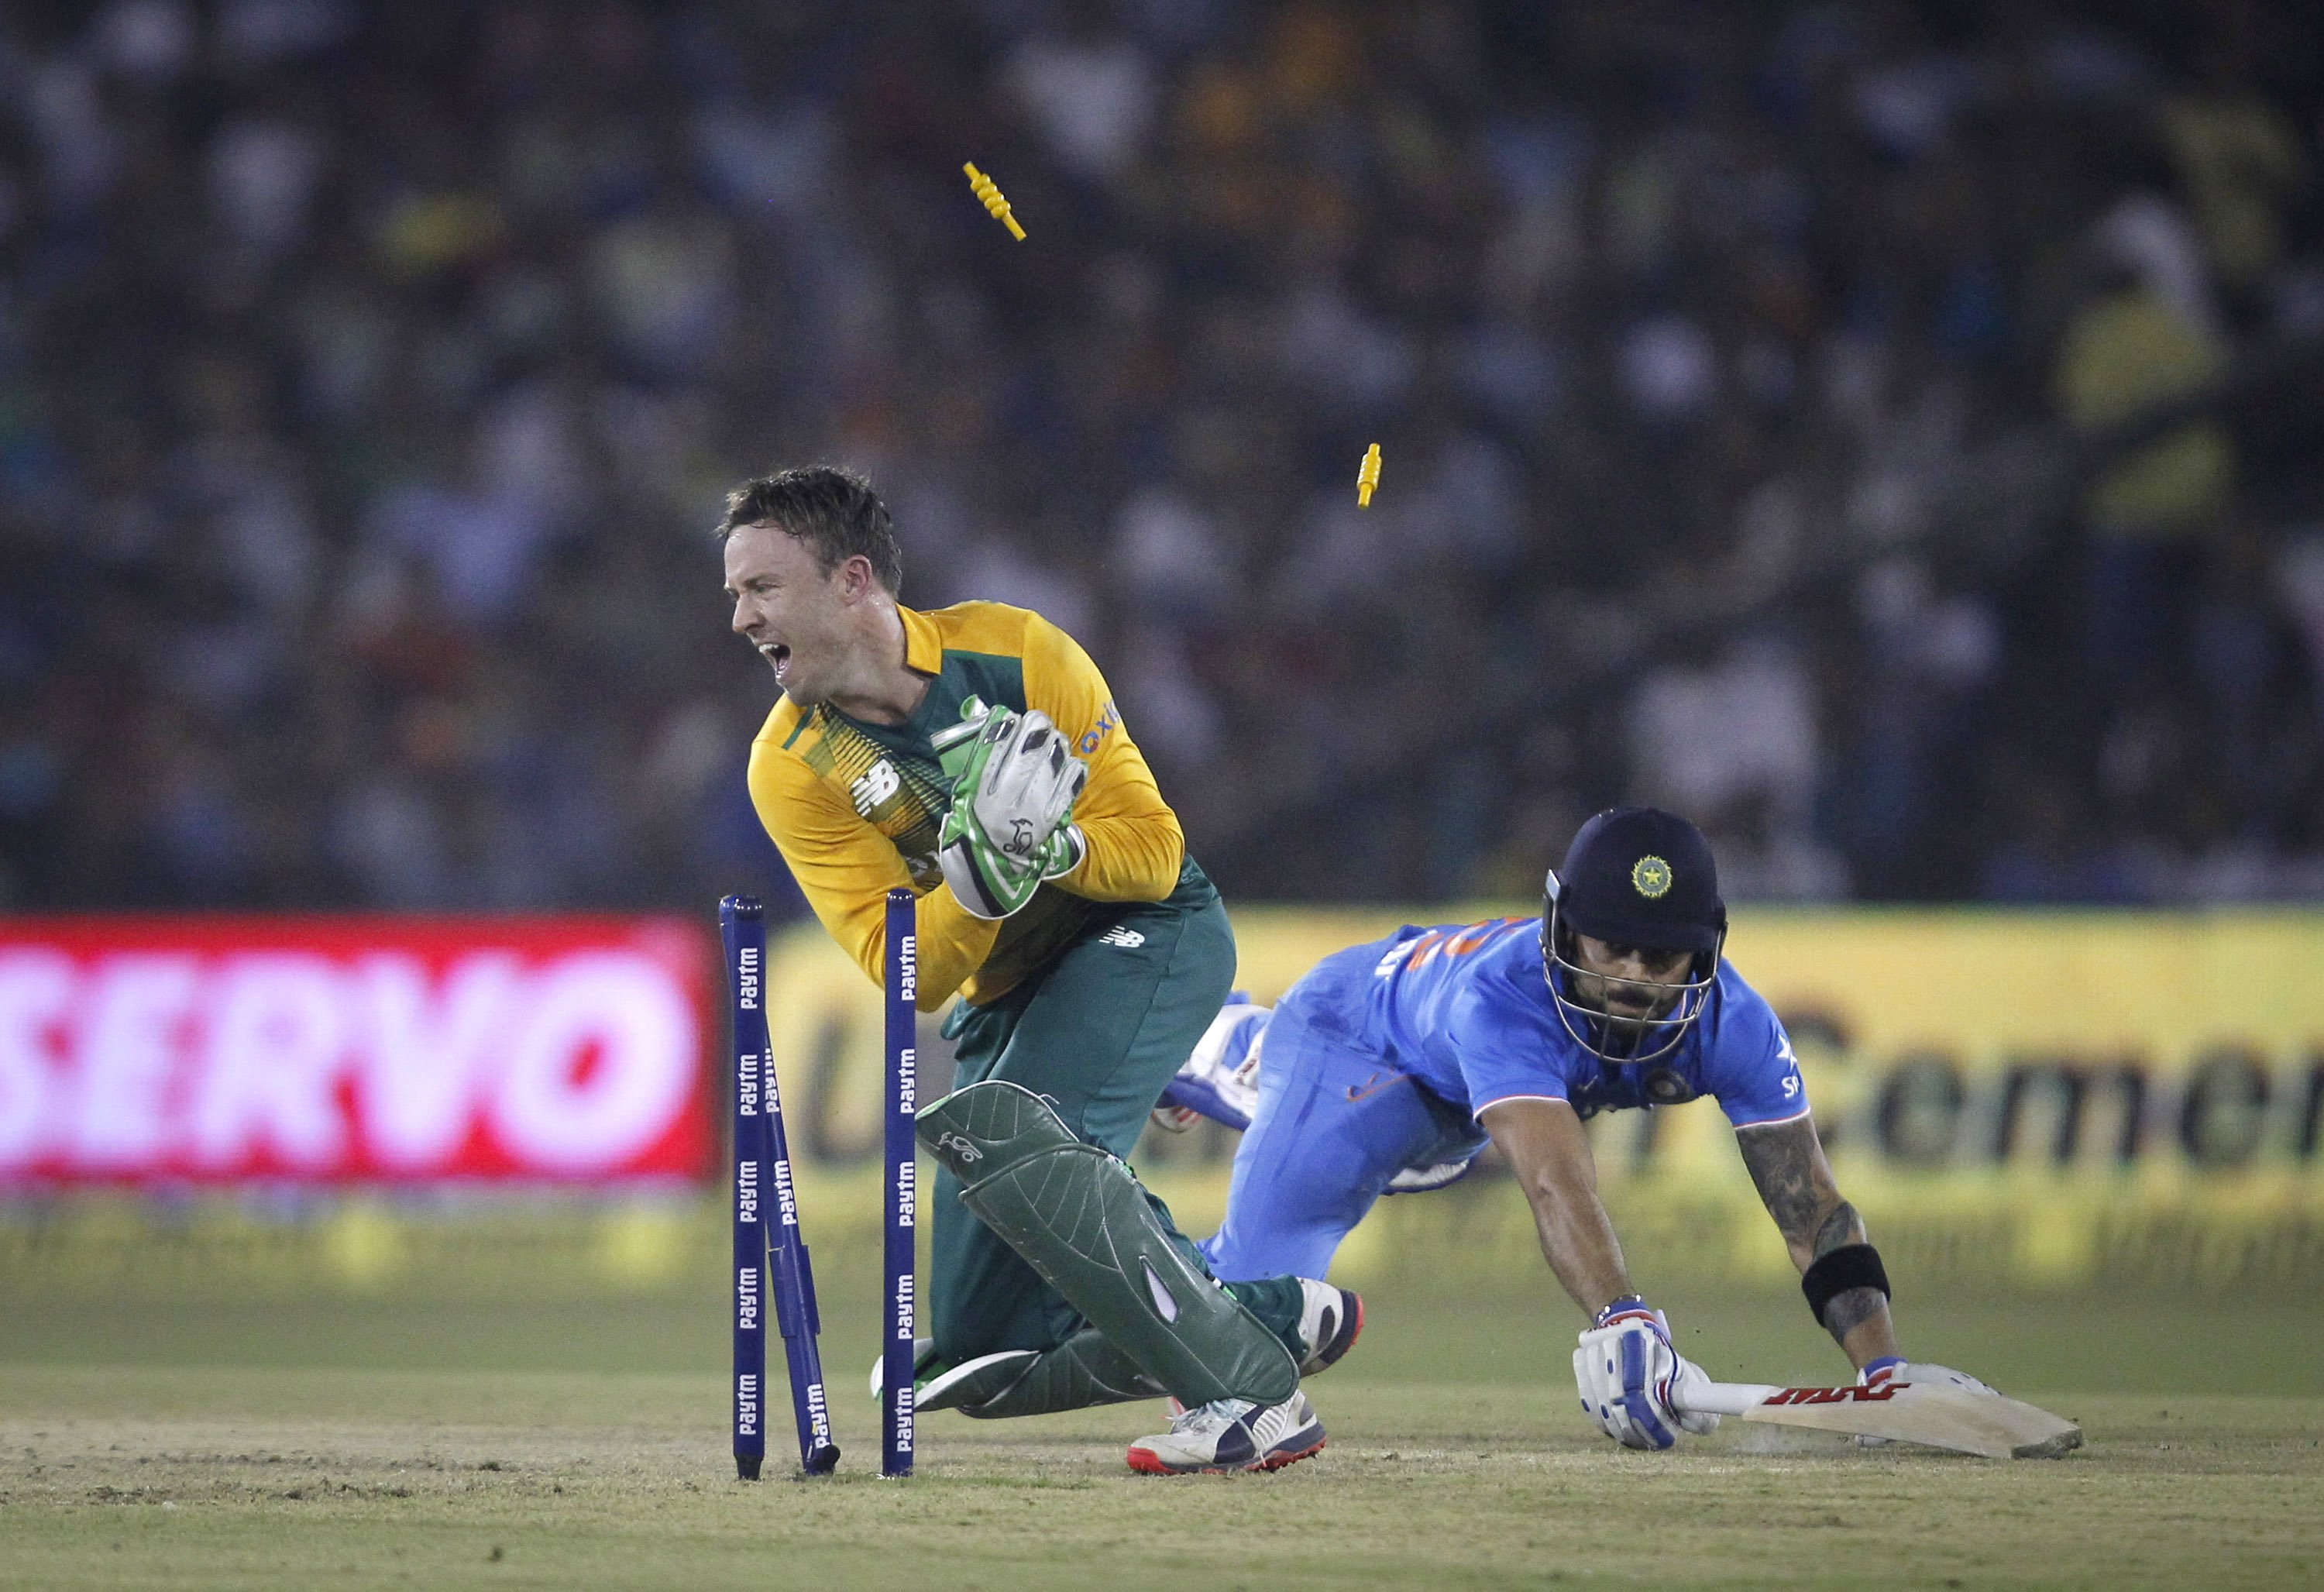 India's Virat Kohli dives to make the crease as he is run out by South Africa's AB de Villiers during their second Twenty20 cricket match in Cuttack, India, October 5, 2015. Photo: Reuters